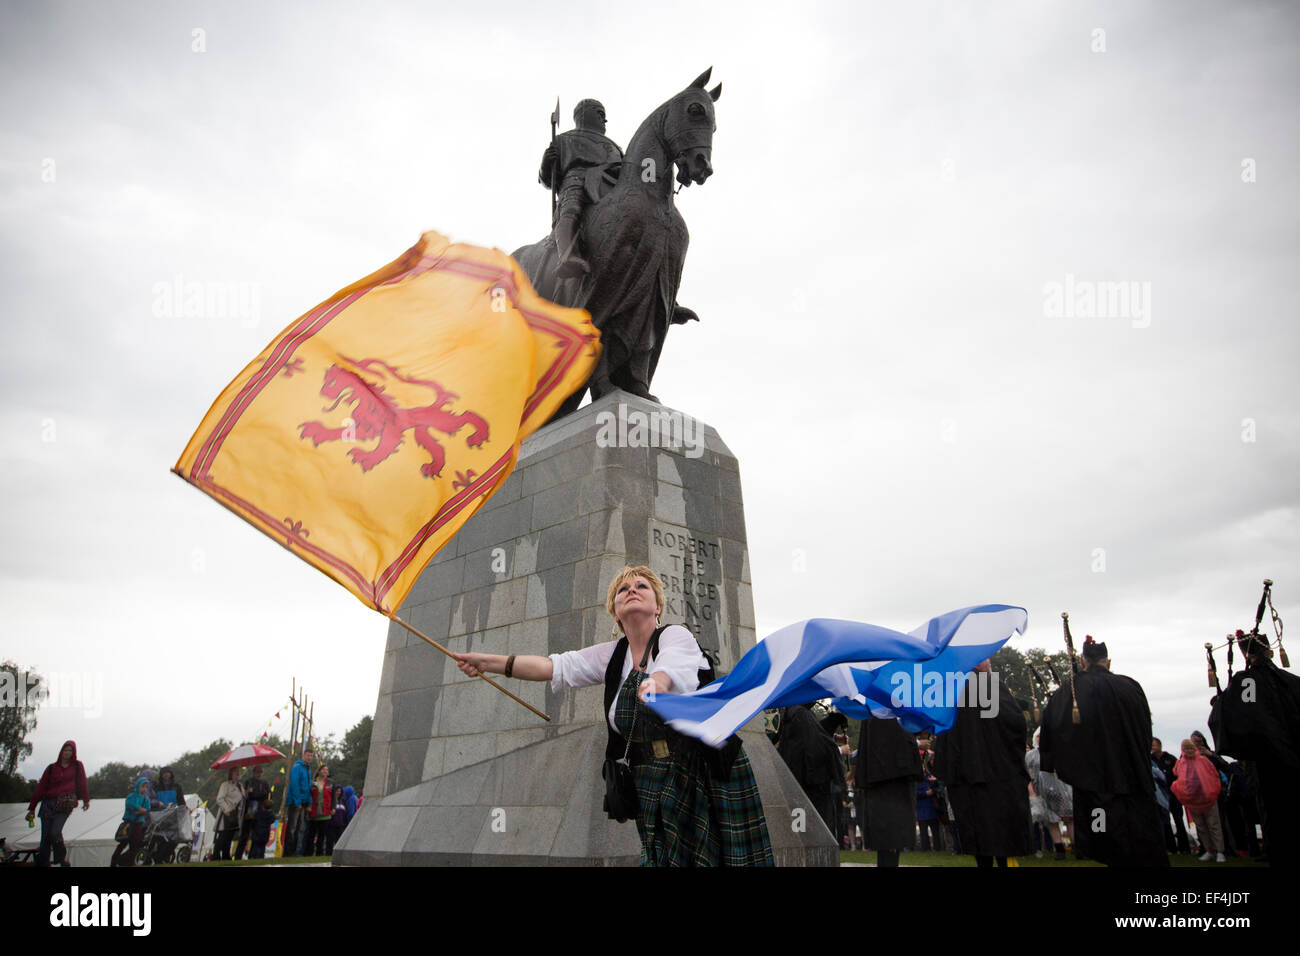 A woman with two Scottish flags dancing in front of the statue to Robert the Bruce during events at Bannockburn - Stock Image